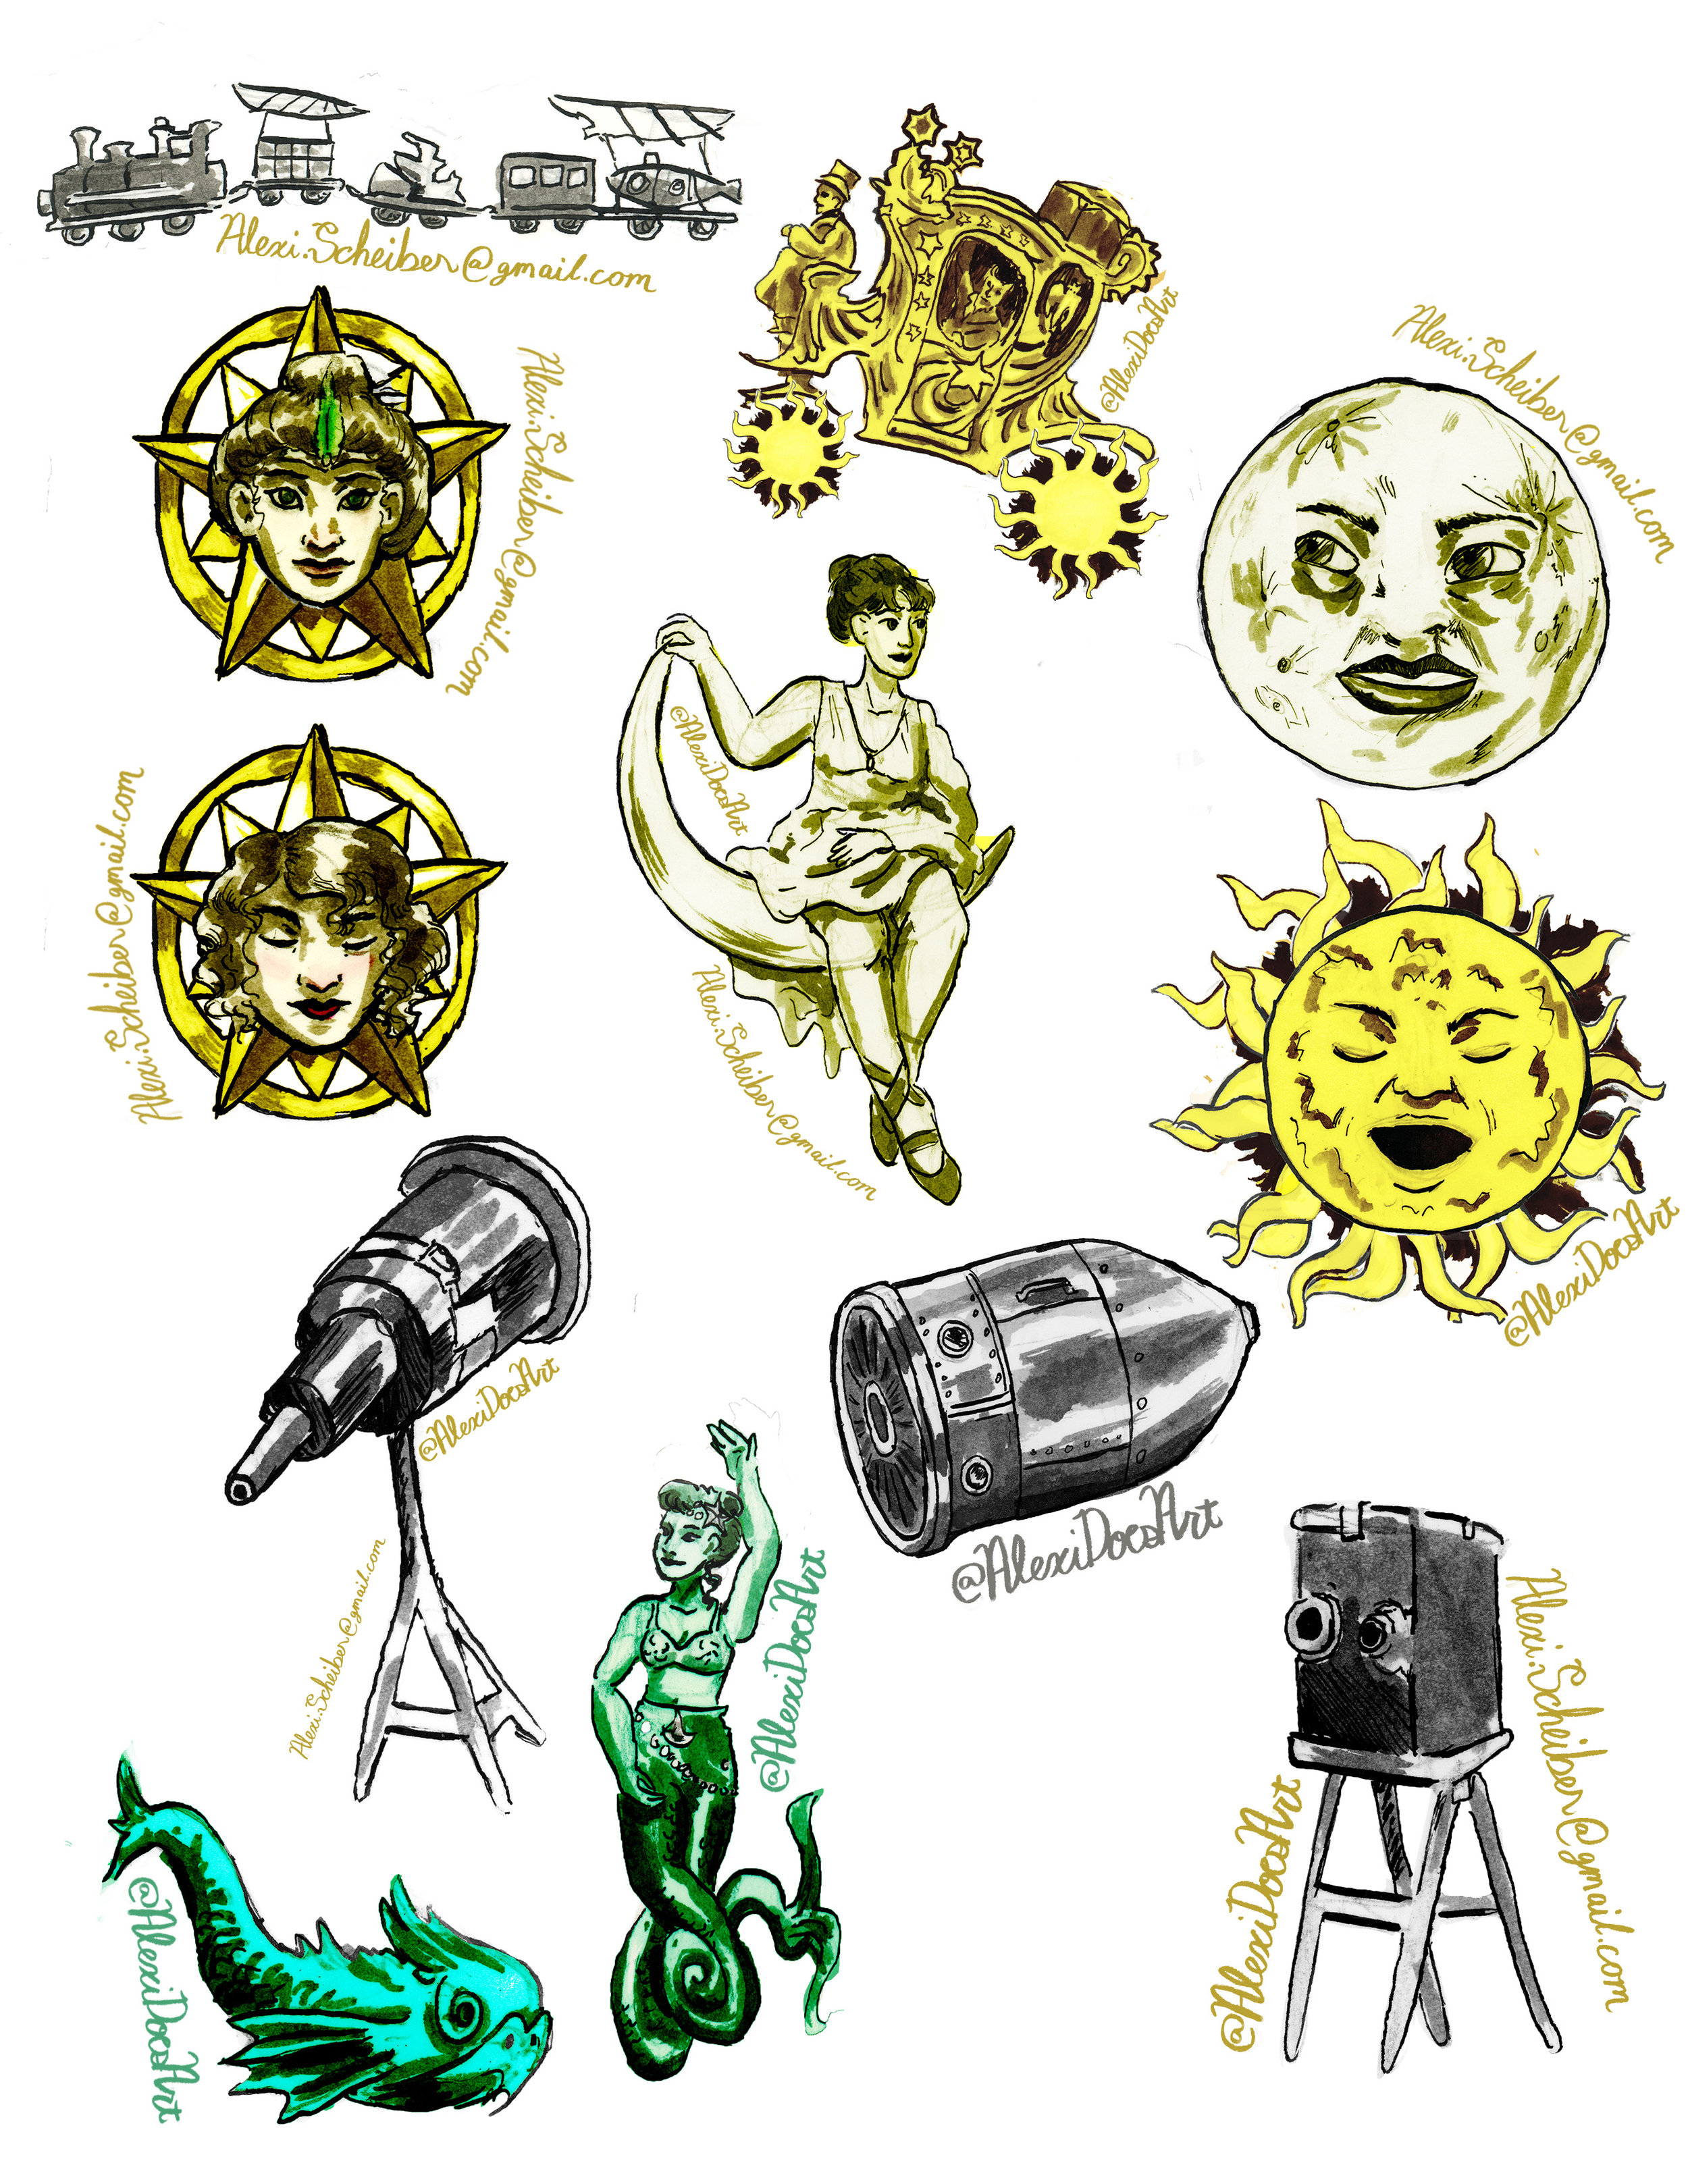 Georges Meilies Sticker set, themed after the first fantasy filmmaker. -